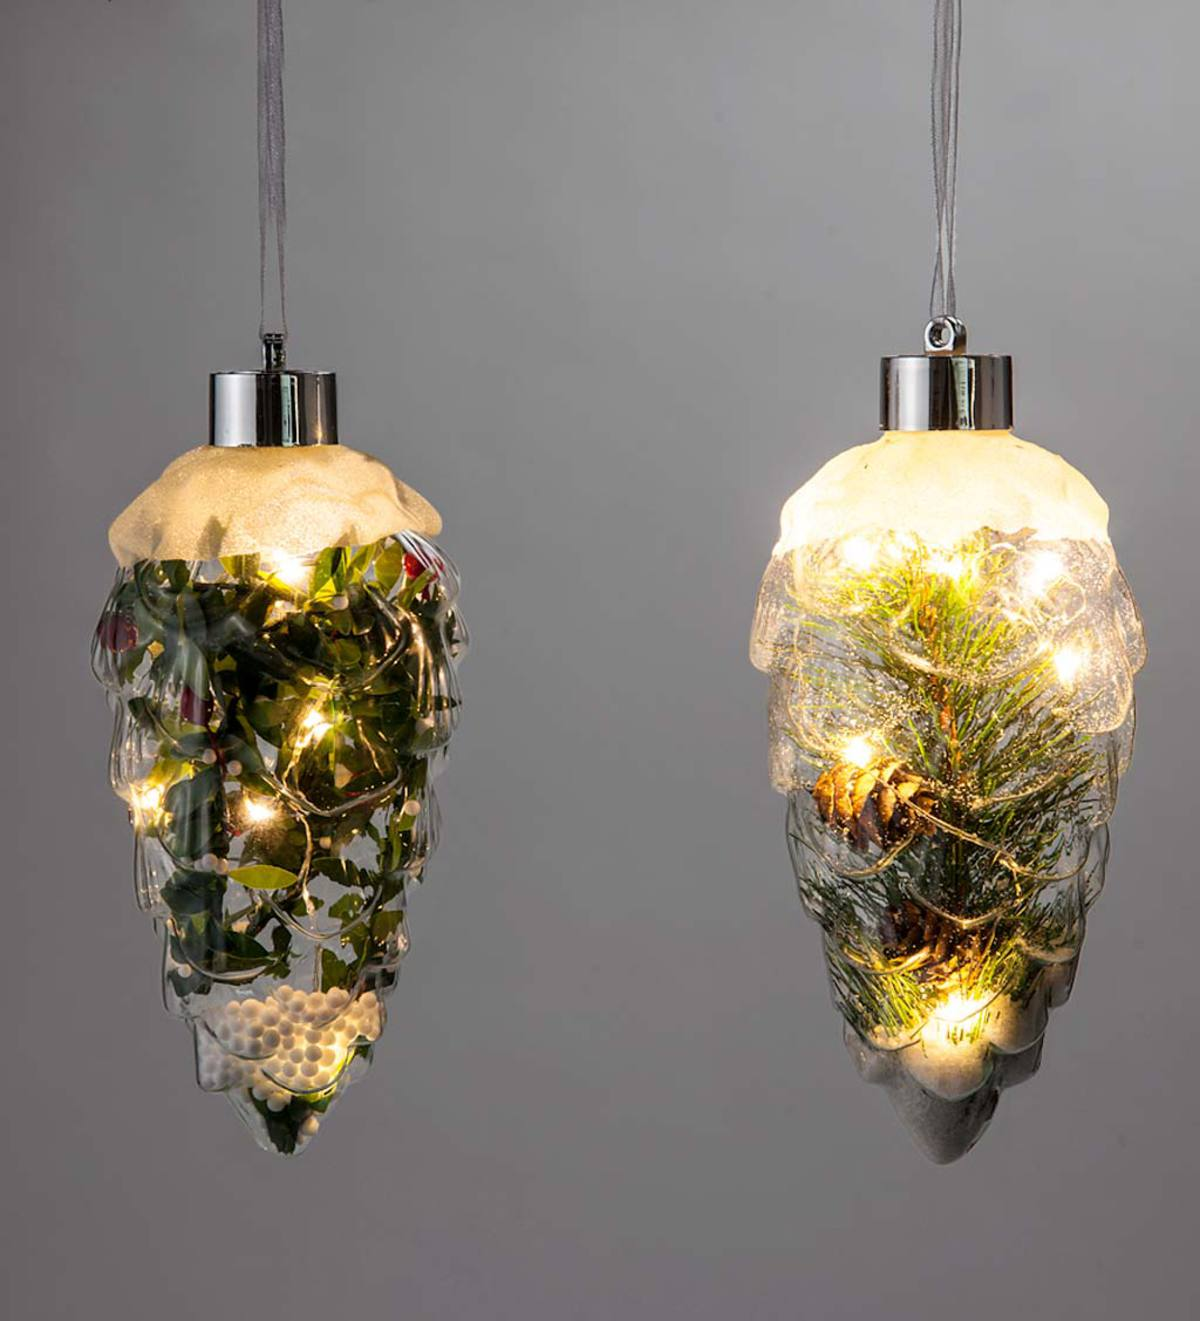 Lighted Glass Pinecone Ornaments, Set of 2